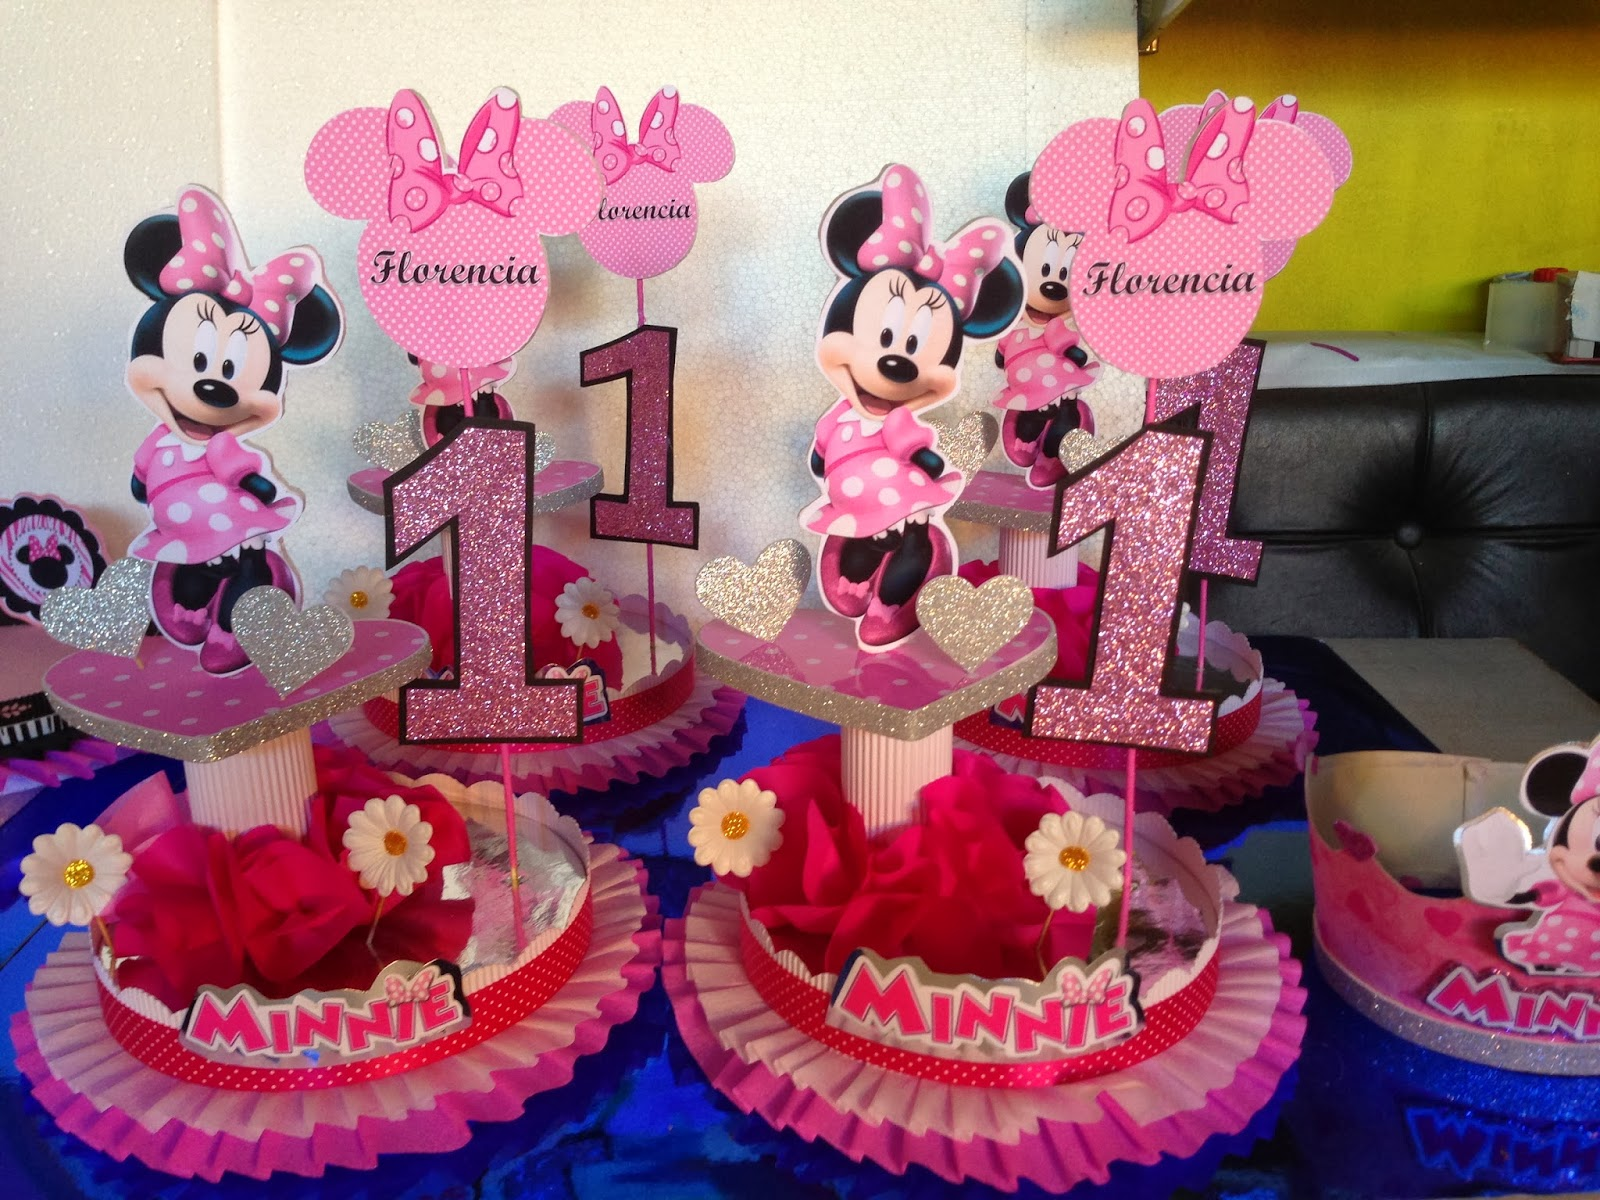 Decoraciones infantiles minnie for Mesa infantil